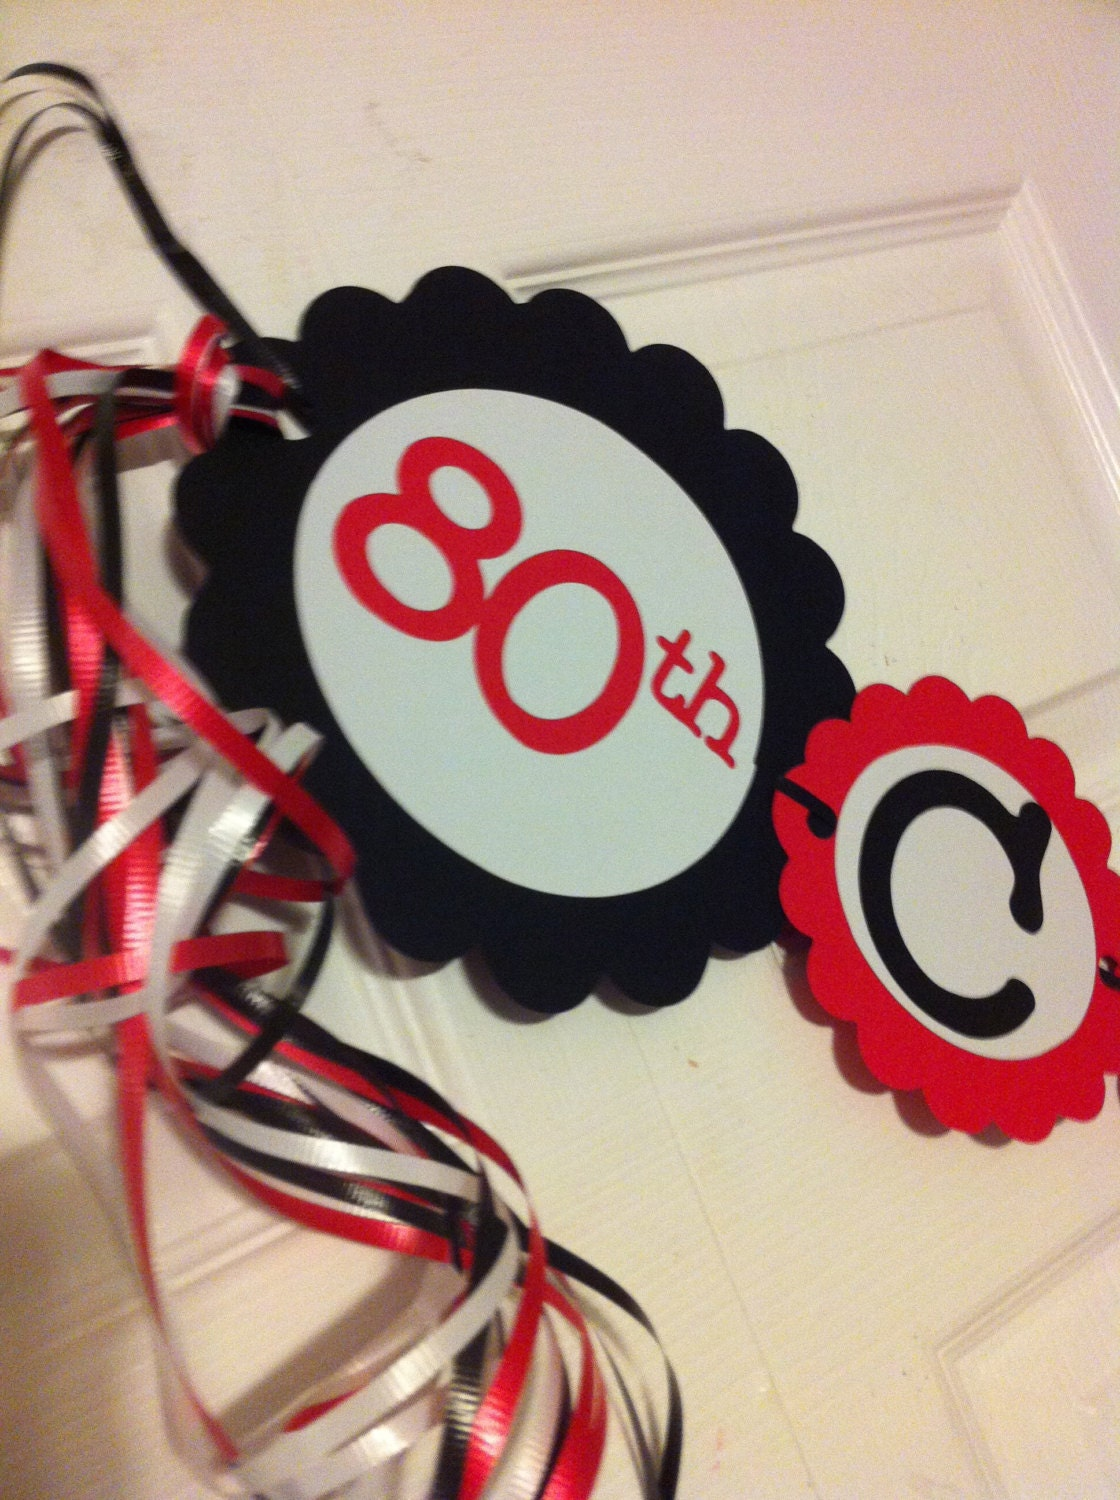 80th birthday decorations cheers to 80 years for 80 birthday decoration ideas